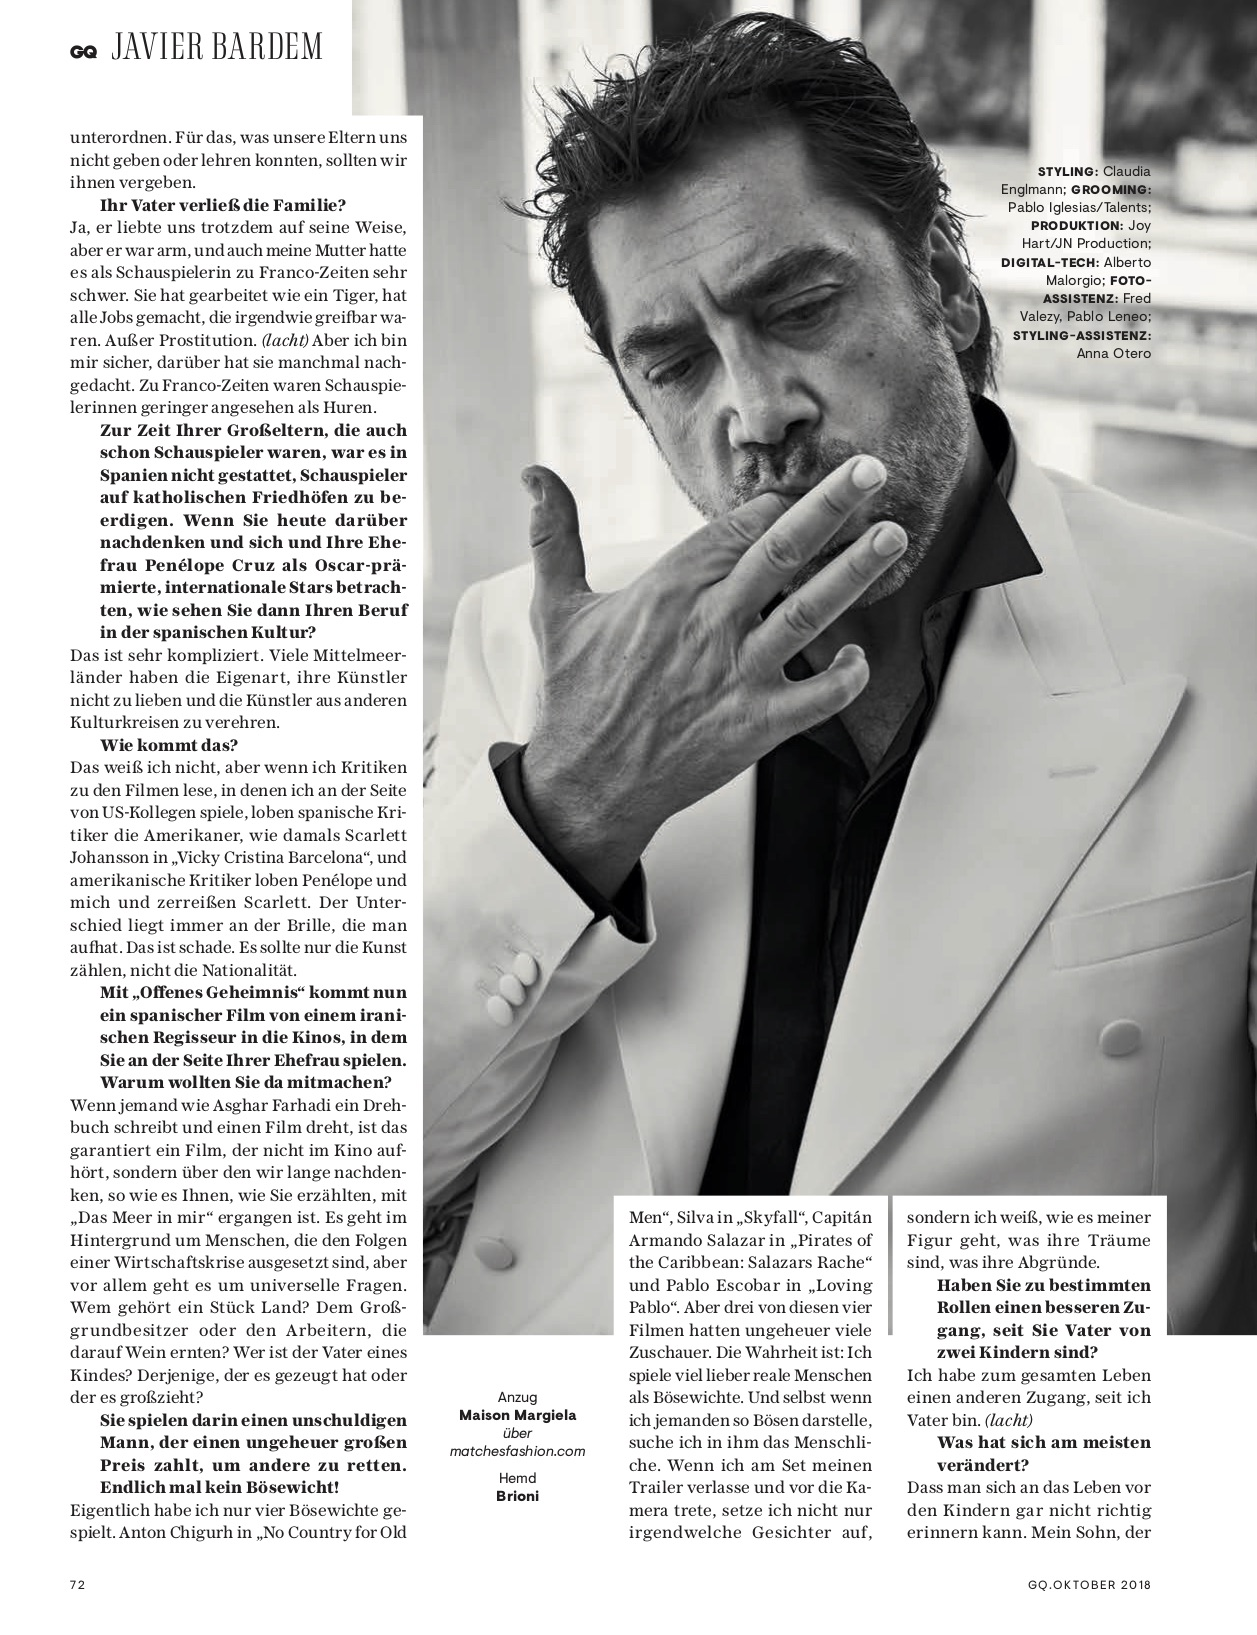 GQ with Javier Bardem 7 by Claudia ENGLMANN